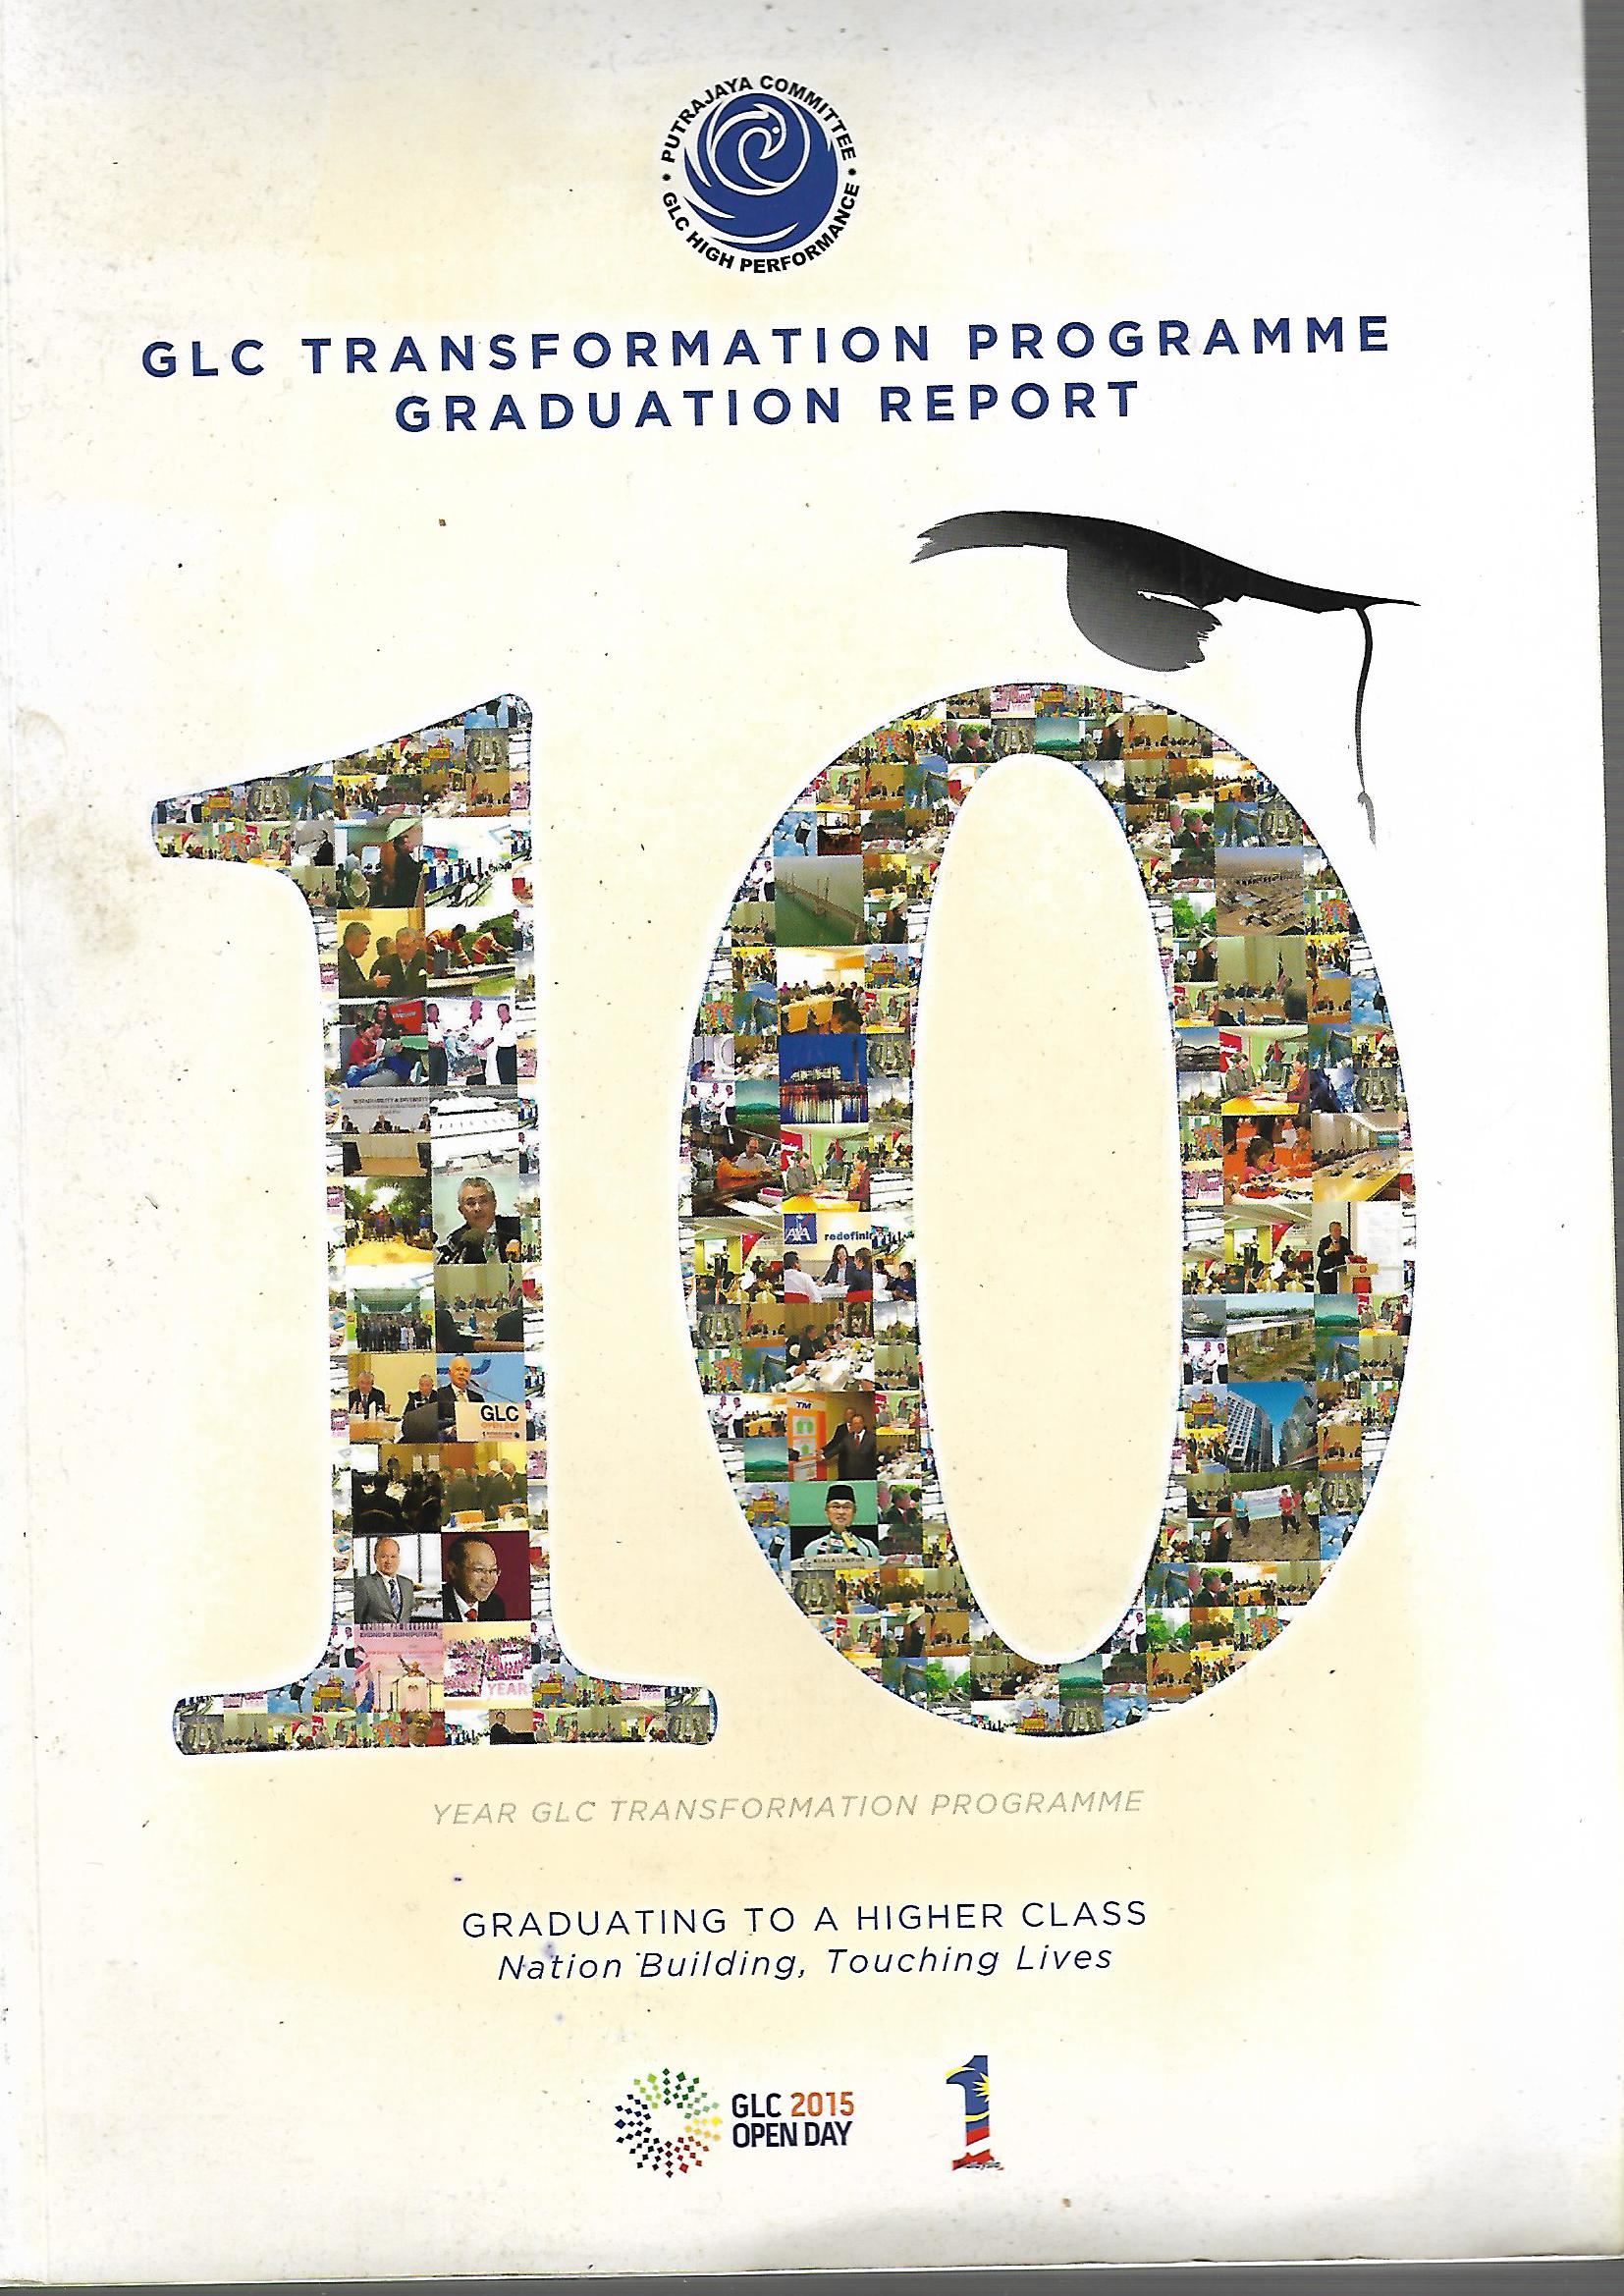 GLC Transformation Programme Graduation Report: 10 Year GLC Transformation Programme